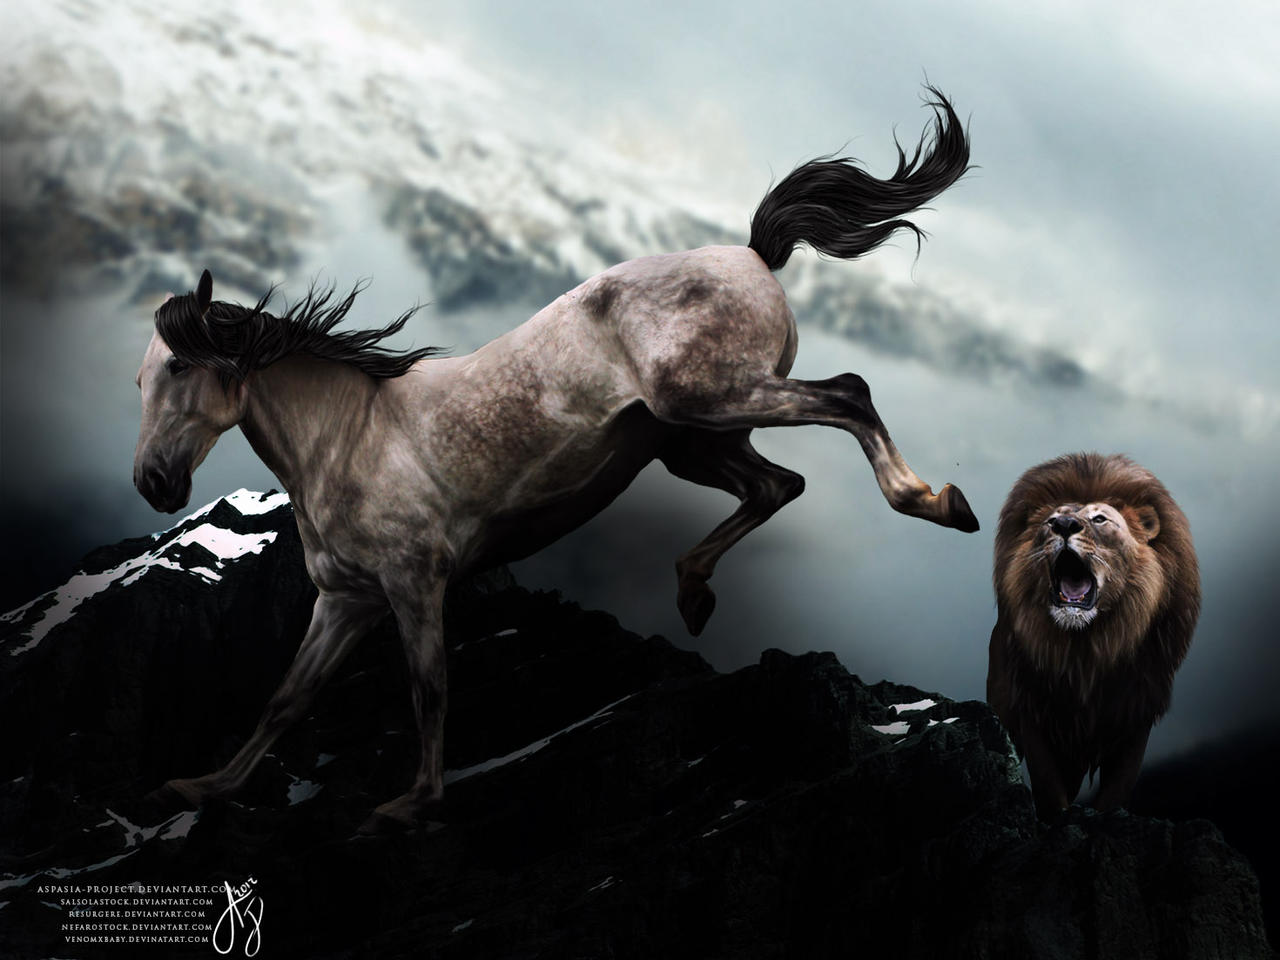 Beasts by Aspasia-Project